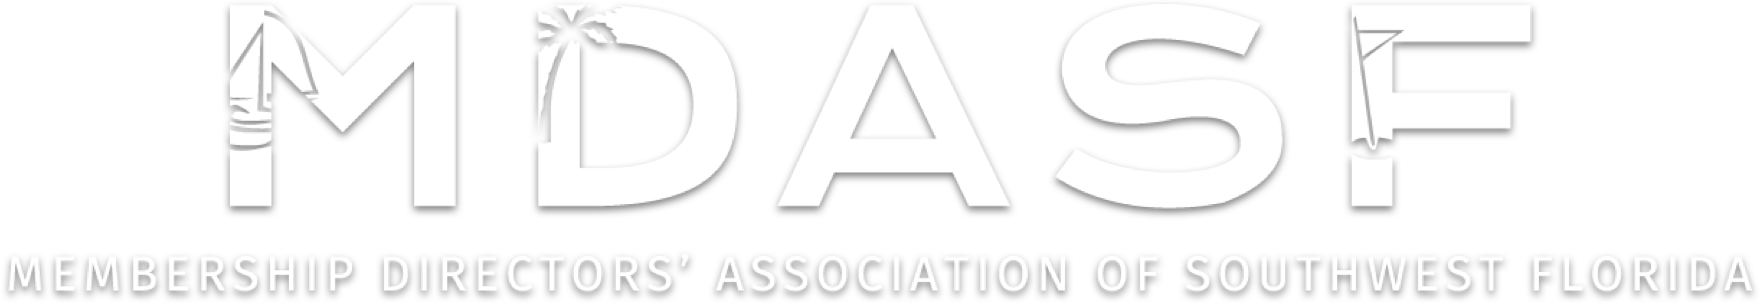 Membership Directors Association of Southwest Florida